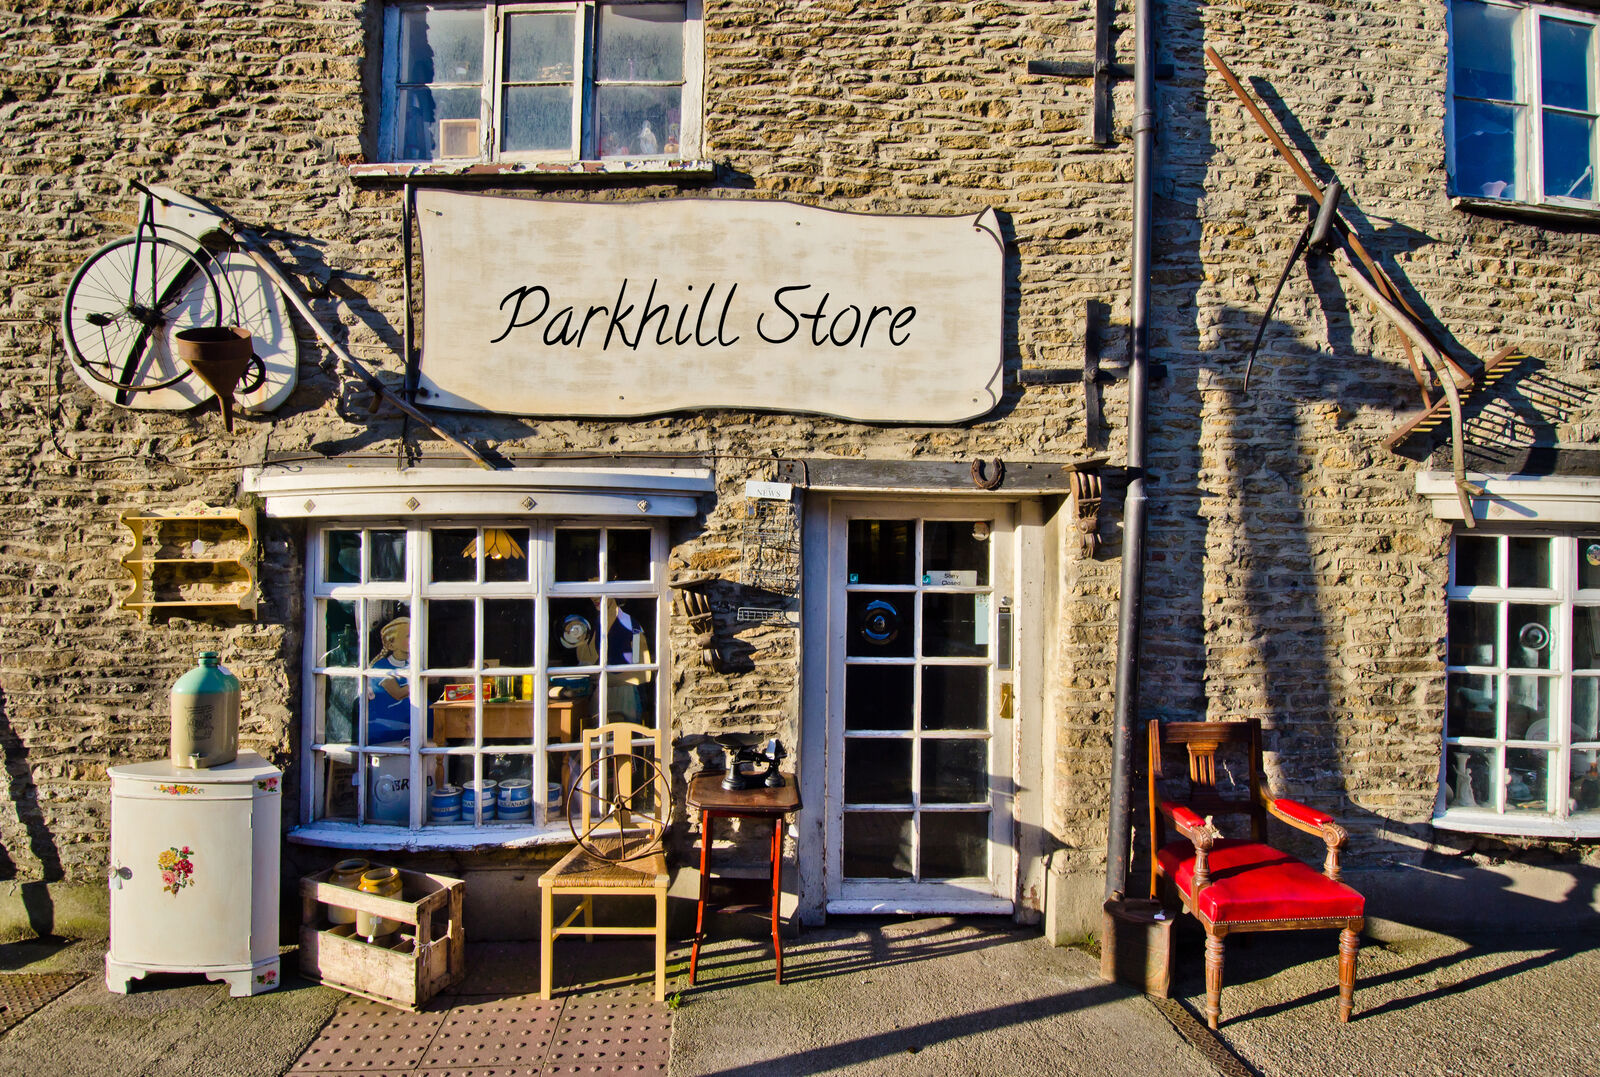 Parkhill Store